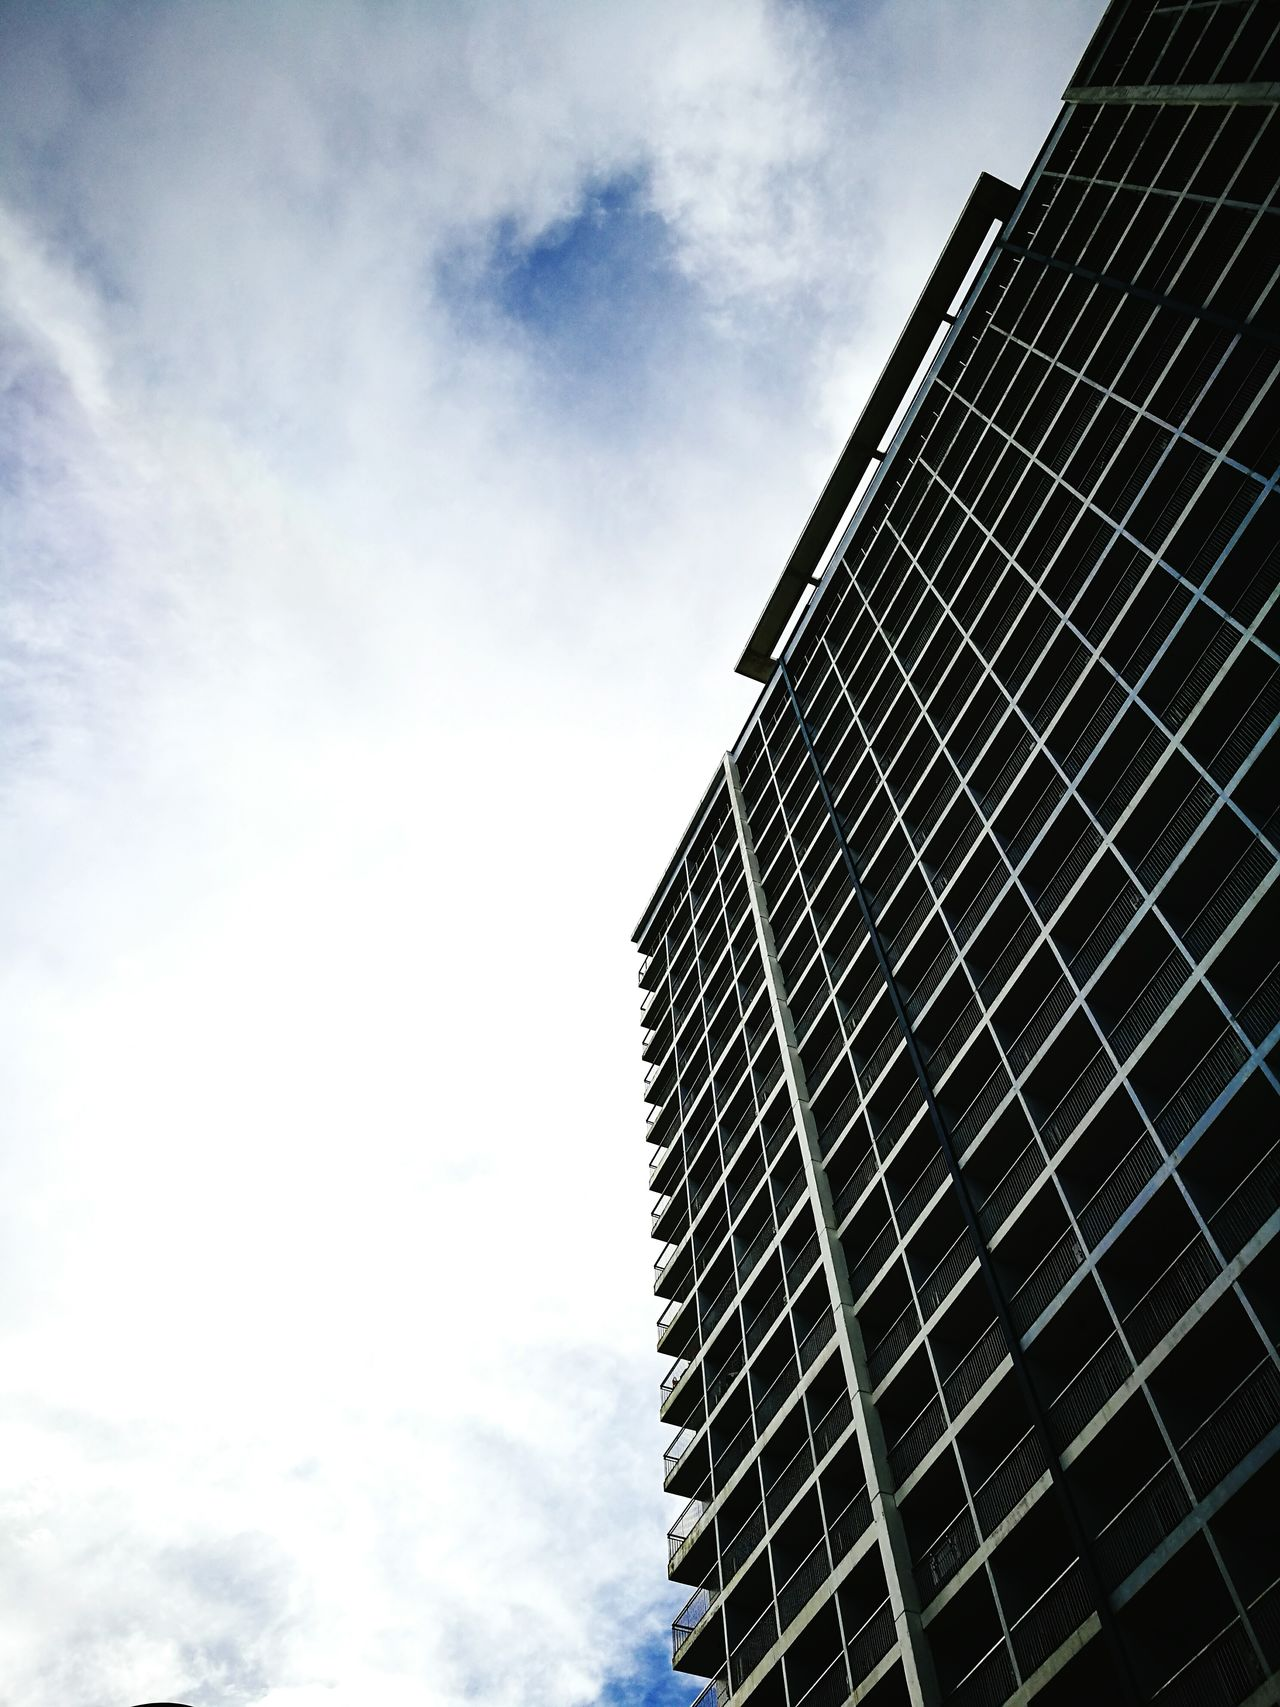 Skyscrapers. Low Angle View Architecture No People Outdoors Built Structure Still Life Cloudscape Horizon Sky Street Photography Futuristic Mobilephotography Amateur Shot Amateur Photography